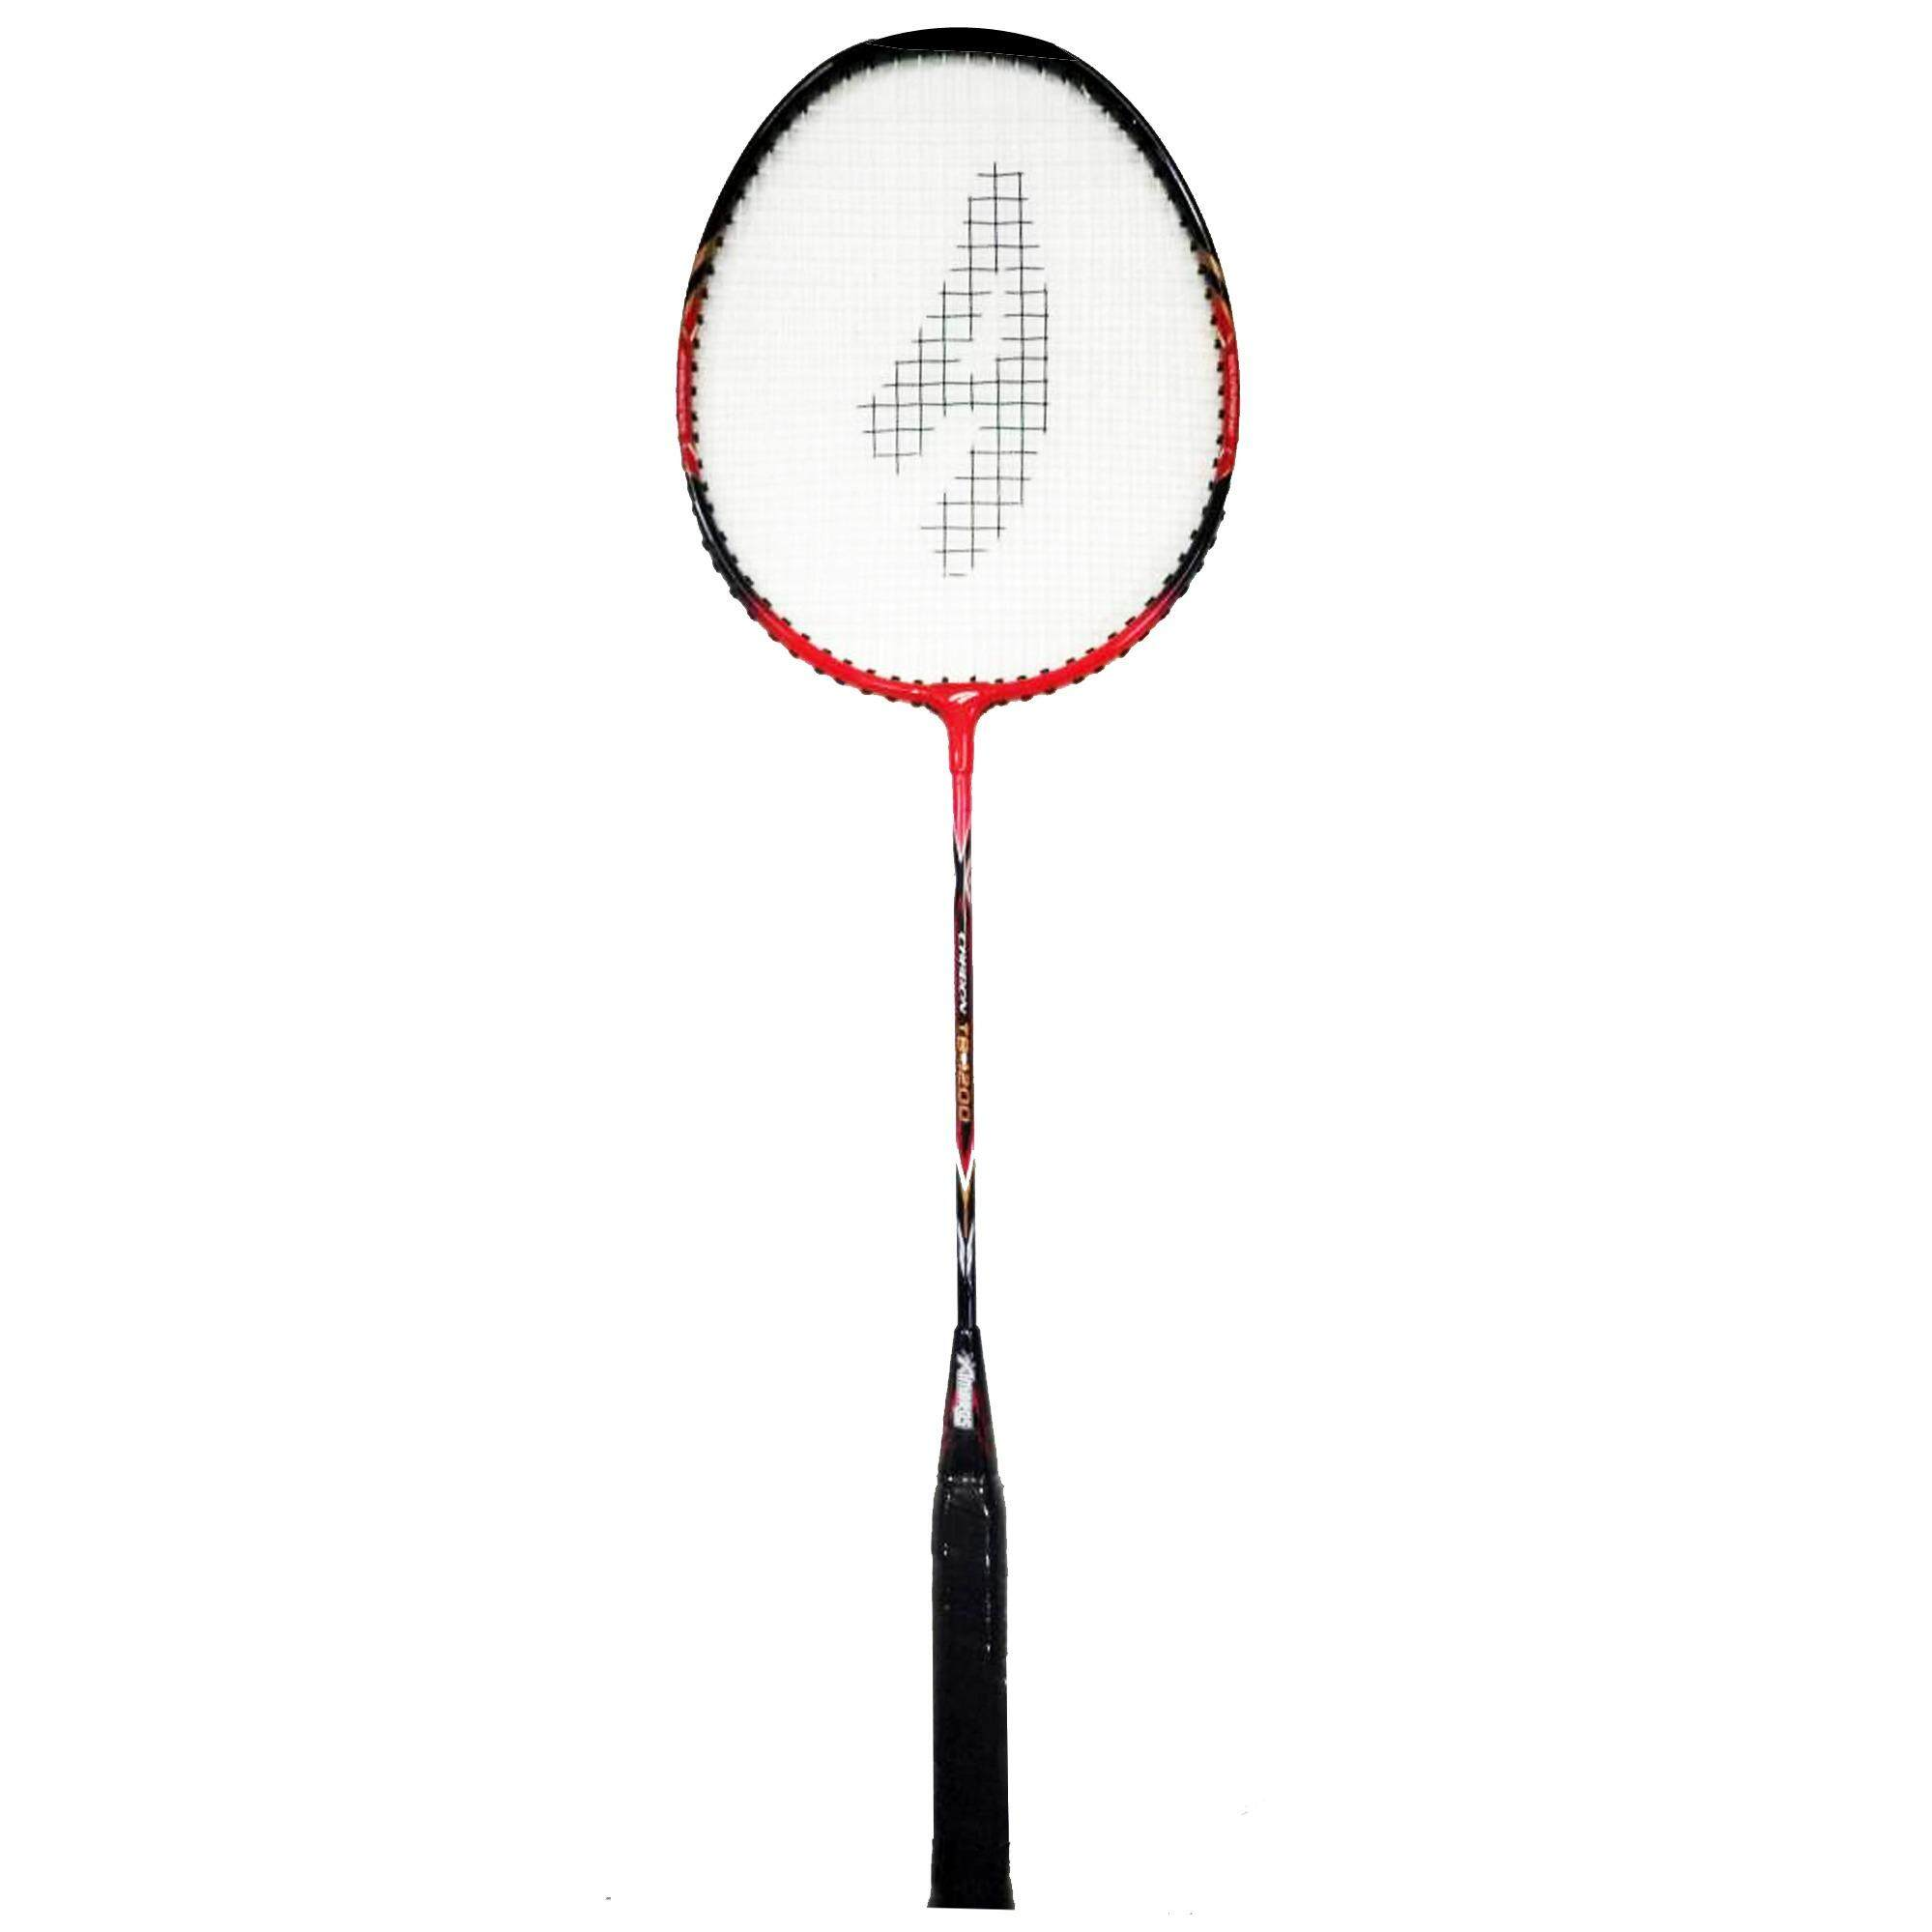 Ambros TB-1200 T-Joint Badminton Racket - Red/Black